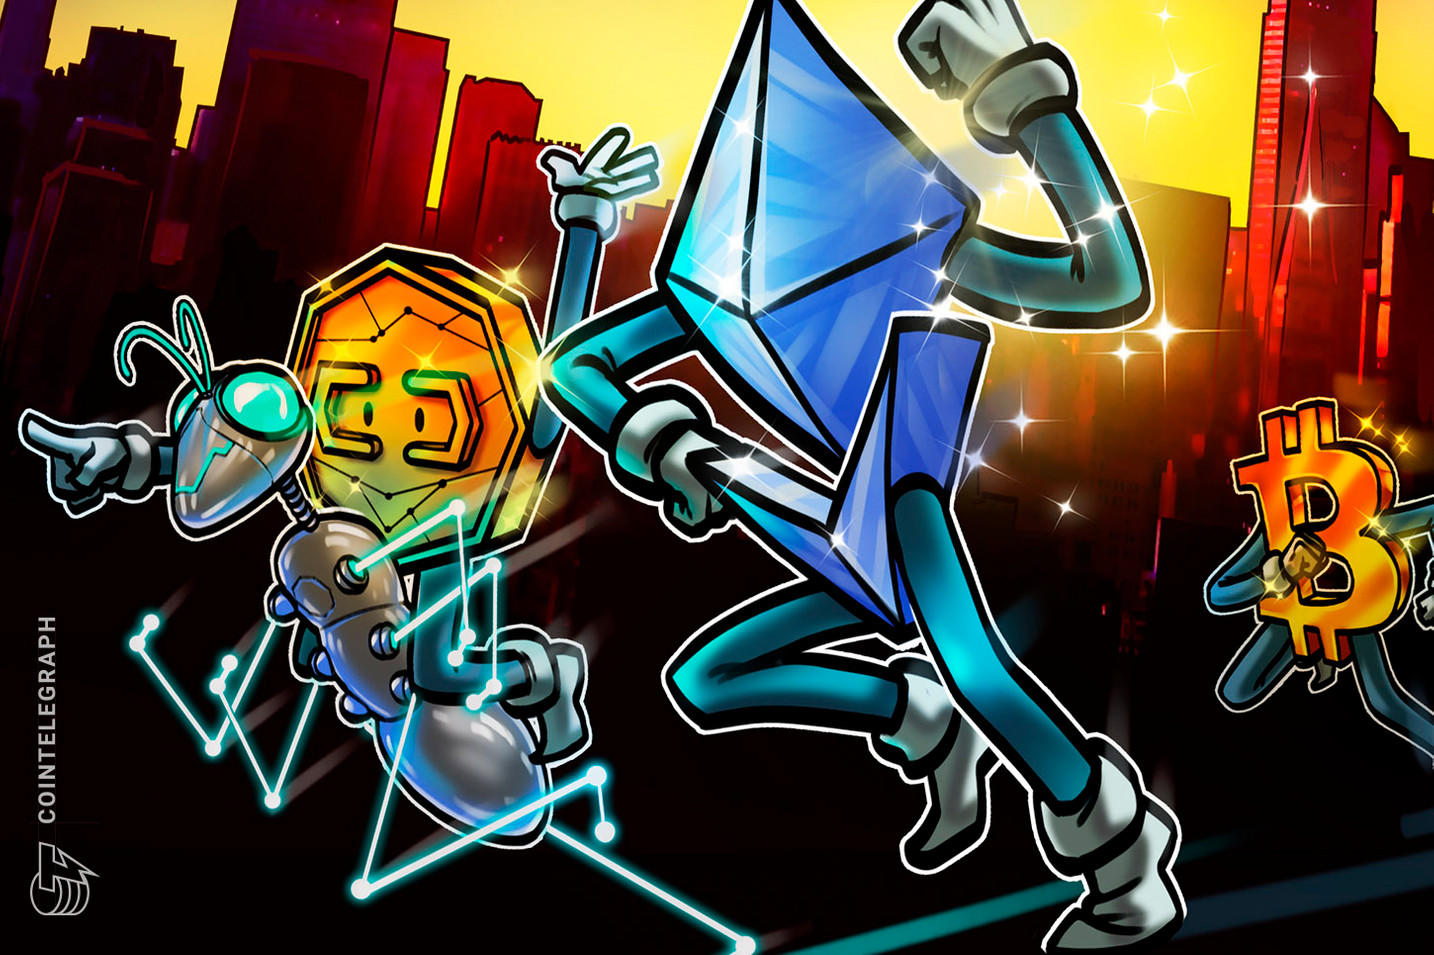 """Cardano founder: Bitcoin is """"its own worst enemy"""" and will lose to ethereum"""